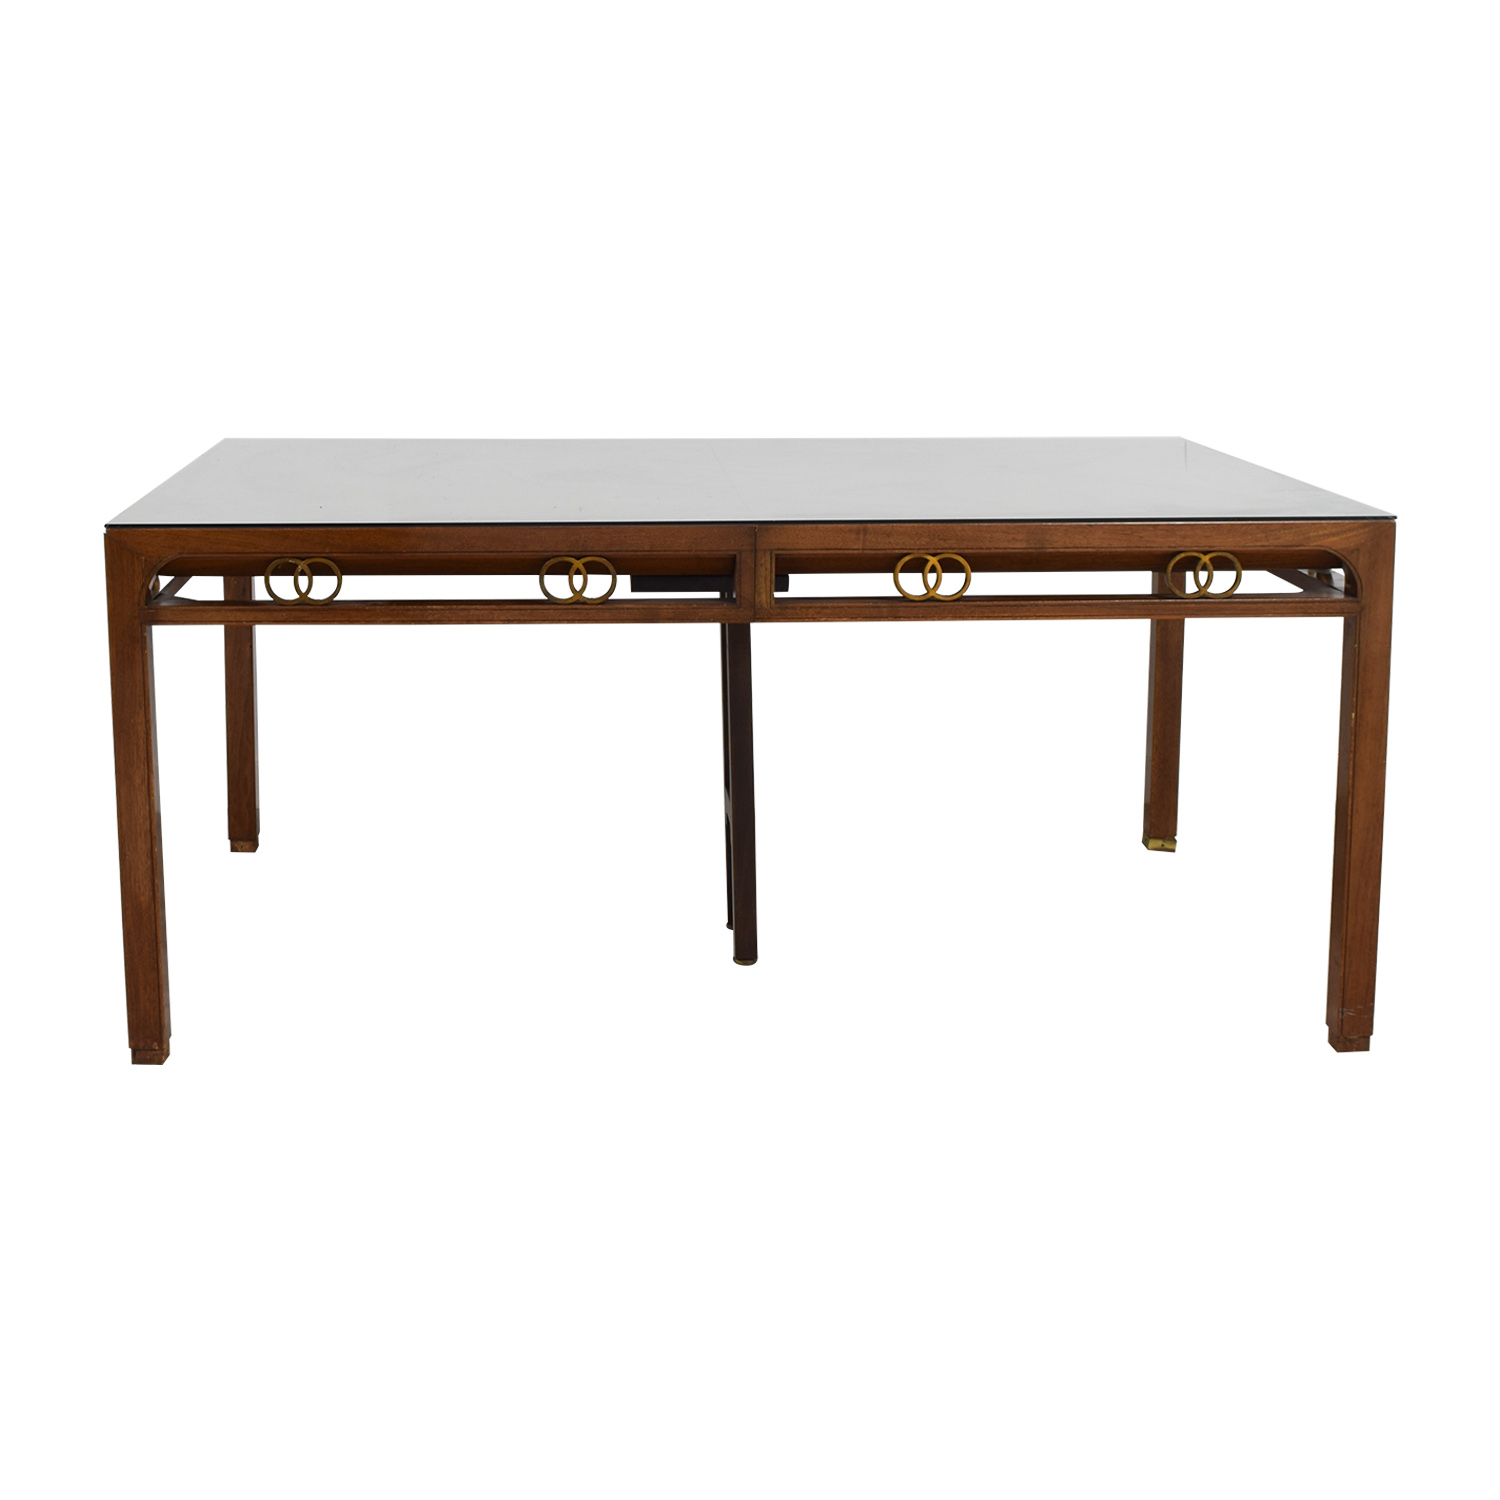 Baker Baker Mid-Century Modern Dining Room Table Sofas